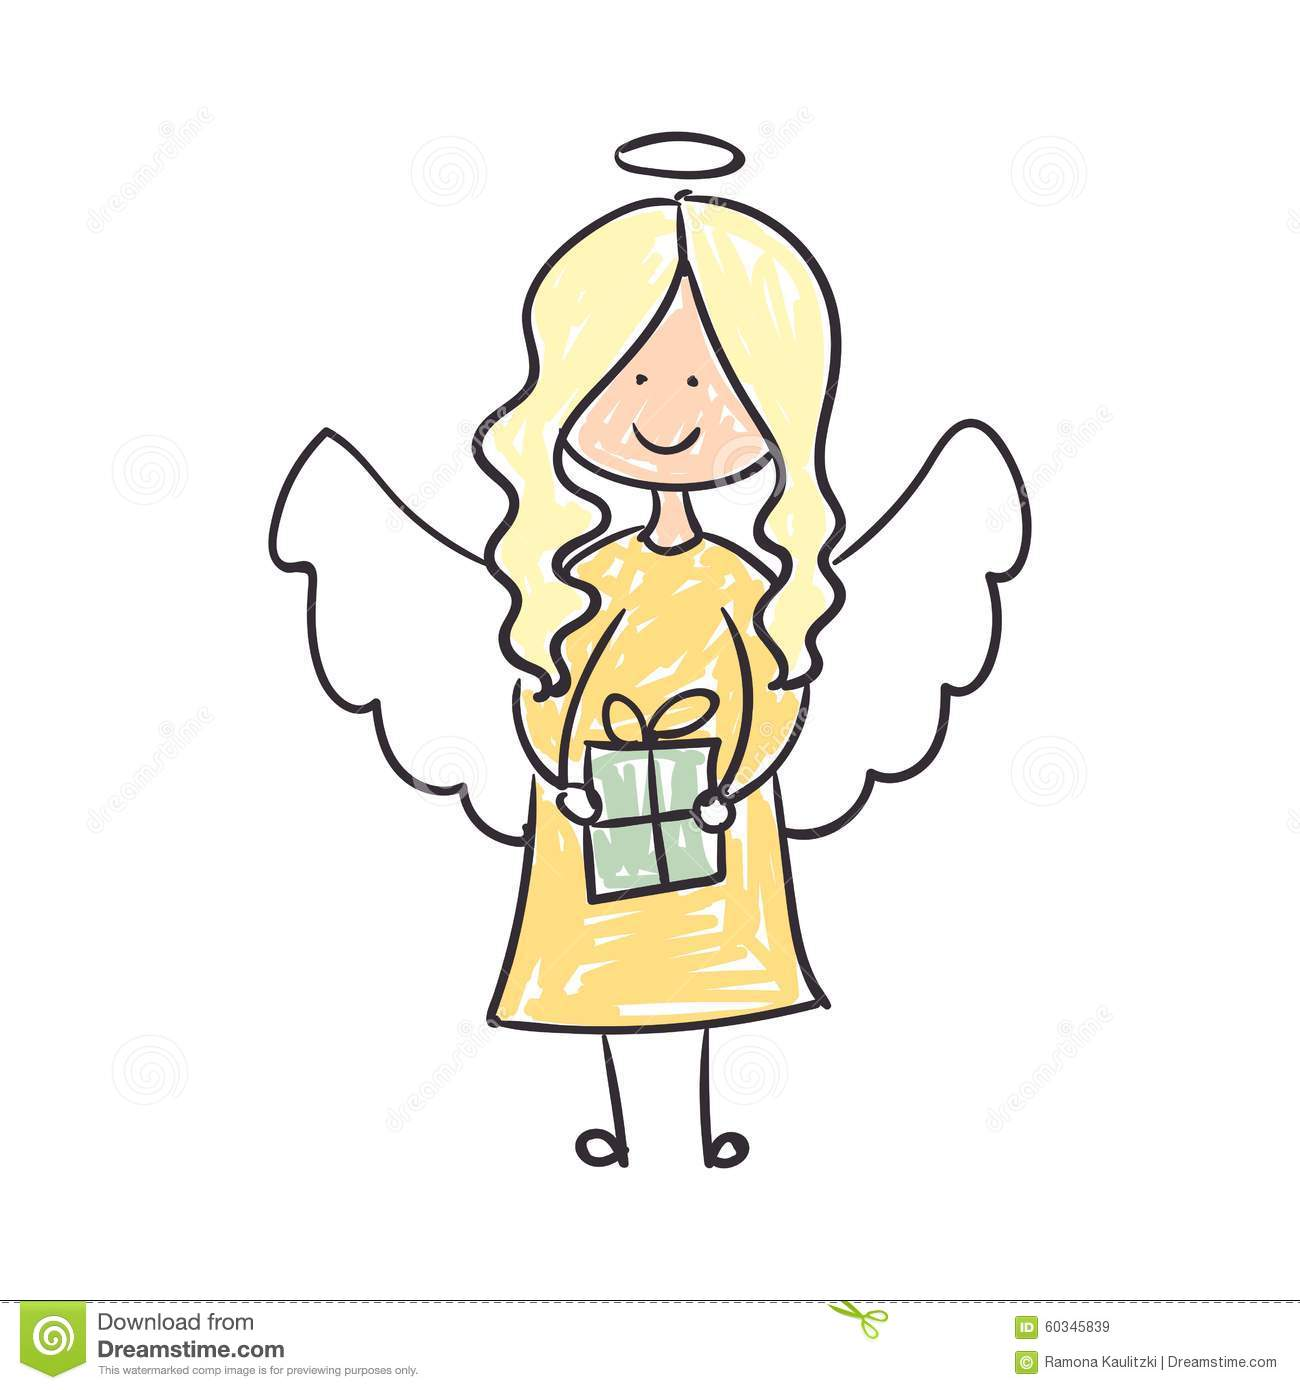 download childrens drawing of an christmas angel stock illustration illustration of gift cute - A Christmas Angel